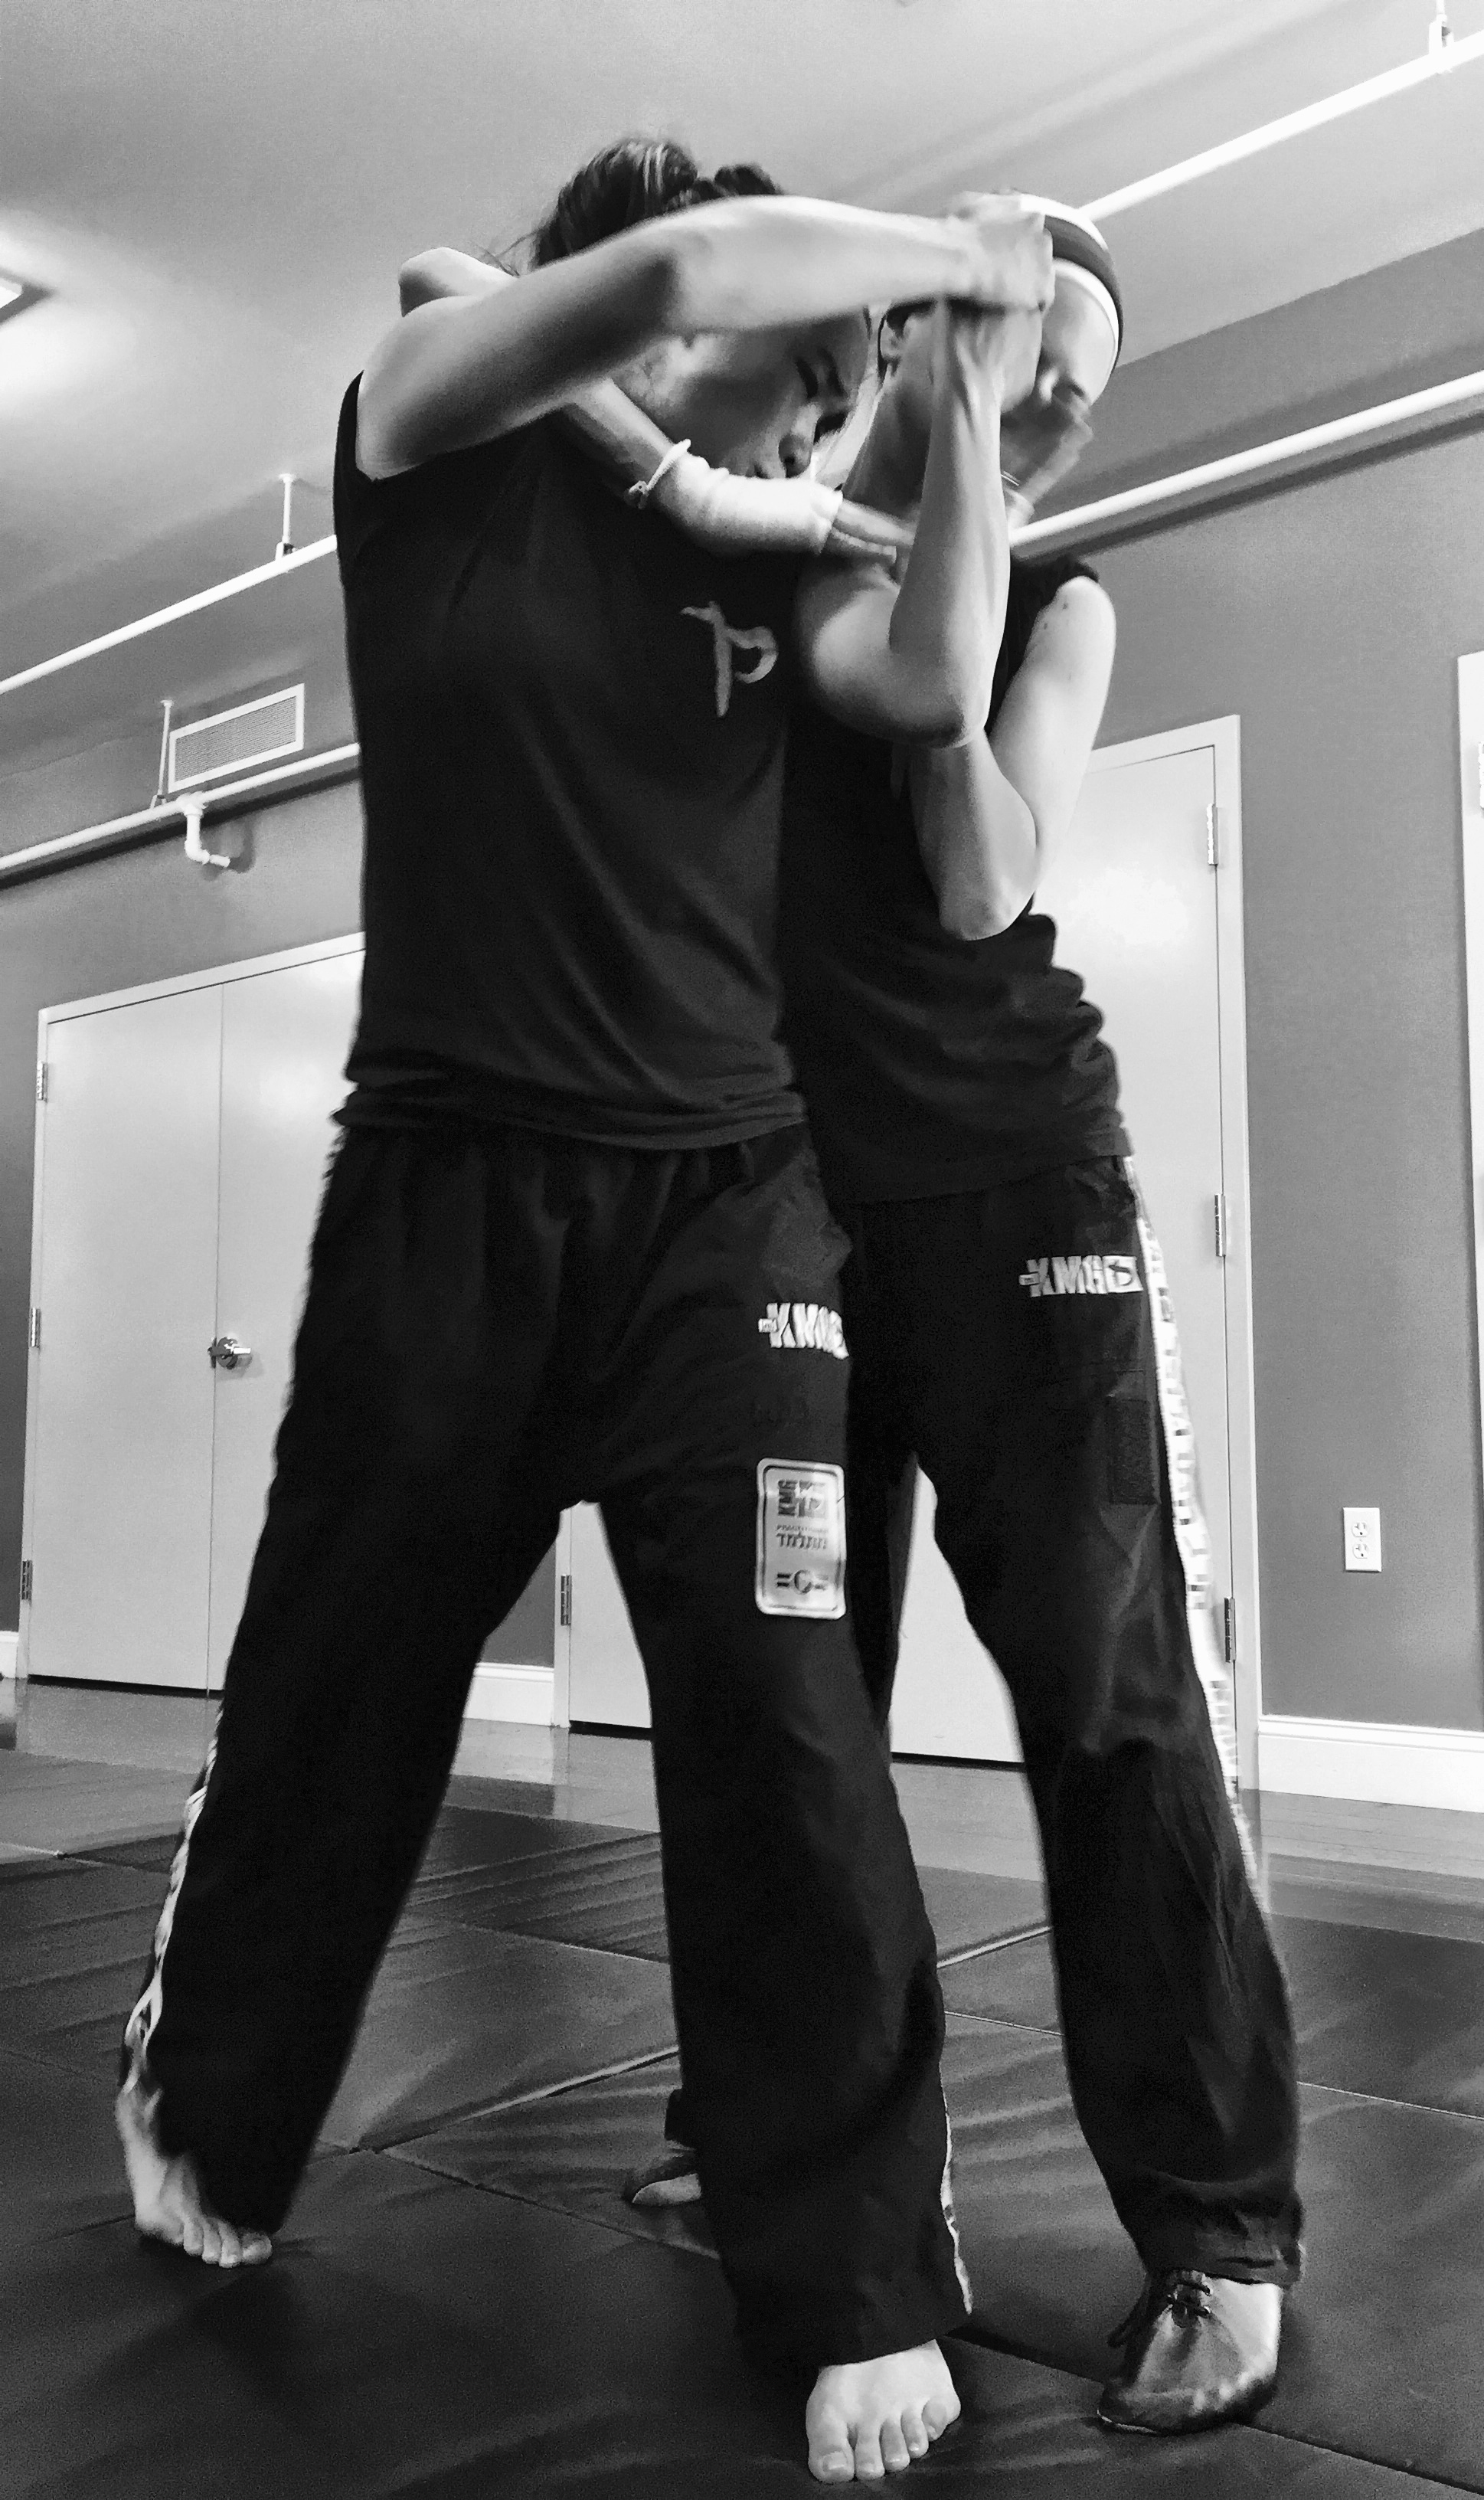 MEMBERSHIP AT PKM IS PRIVATE. - KRAV MAGAThis membership includes four self defense classes per week. Each class is one hour long. You must attend a trial class before being eligible for this membership. There is a 12-month signed agreement necessary for this membership.TIME: 4 KRAV MAGA CLASSES PER WEEKPRICE: $250.00 PER MONTHYou are required to attend a trial class before being eligible for membership.- Trial classes are $25.00 and non-refundable. You cam only reschedule the trial class once.- If you're unable to commit to attending class two days a week do not waste your time signing up for a trial class.- Classes are semi-private with a dynamic curriculum. Membership is $250/month with a 1-year contract. No exceptions.Founder Henoch Otero will contact you to schedule your trial class within a few days once you have completed your reservation below.